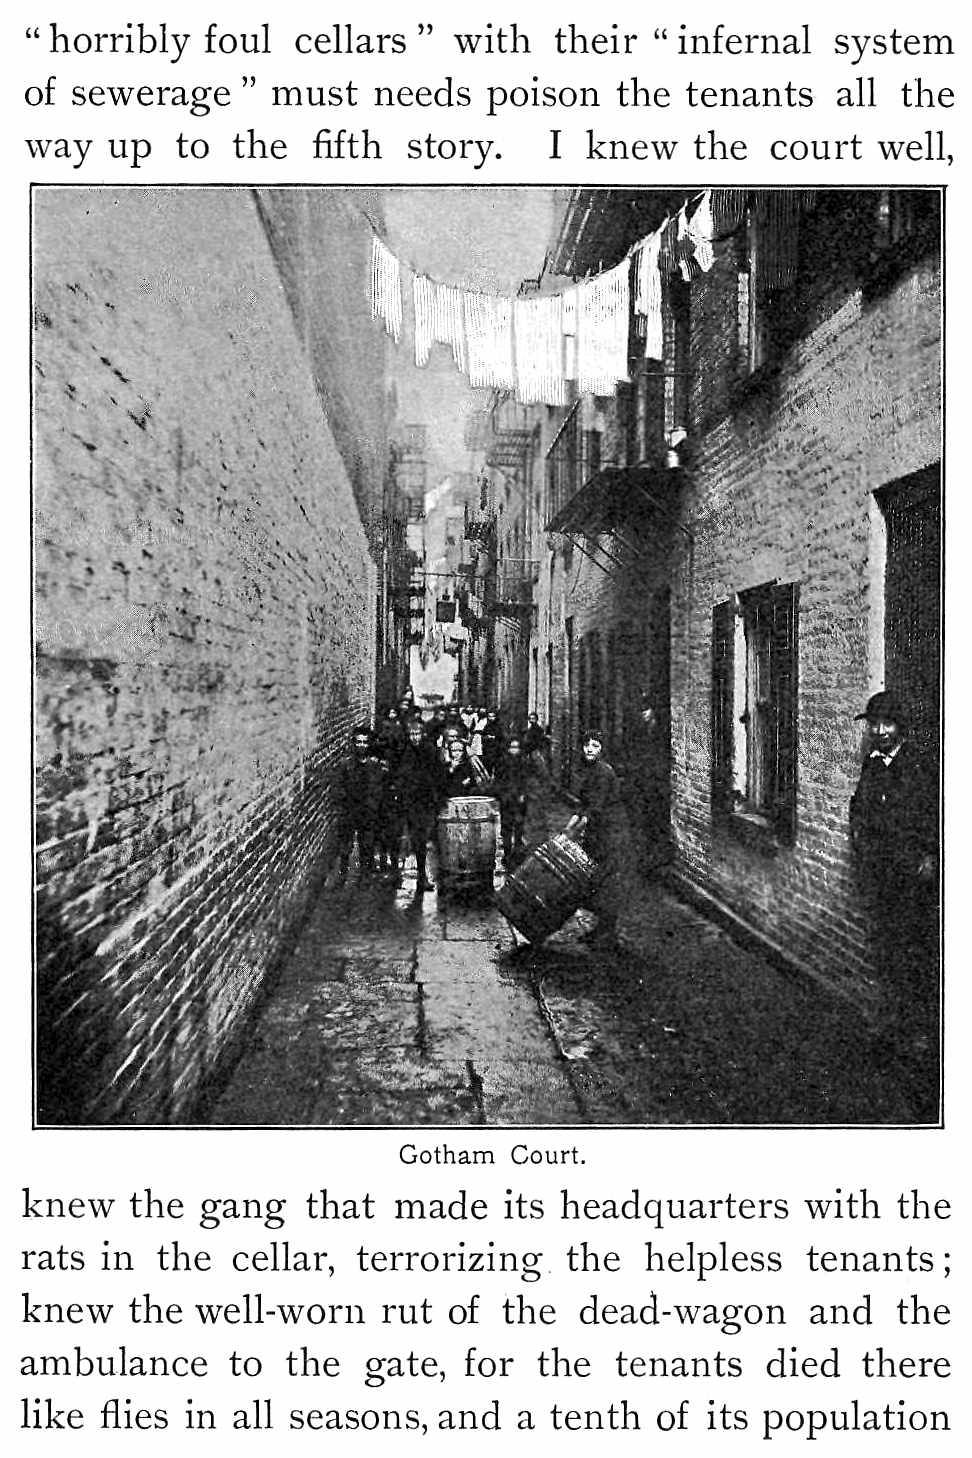 1800s New York Tenements, a photograph and mention of gangs